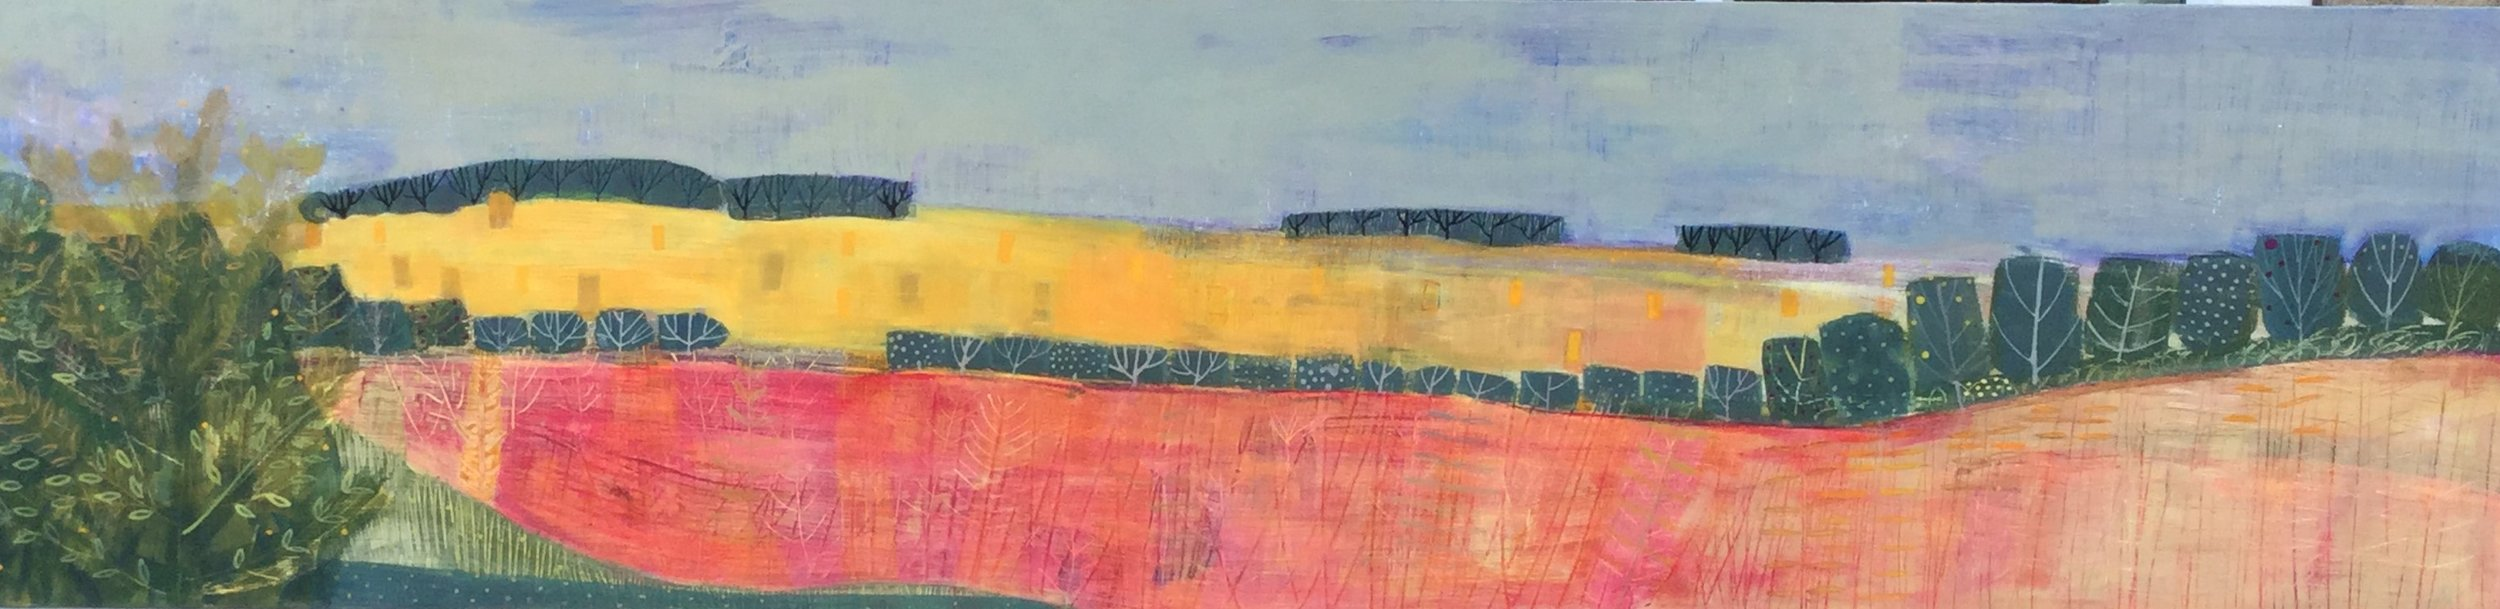 Harvest-in-The-Yorkshire Wolds-acrylic-on-board 2ftx4ft.jpg